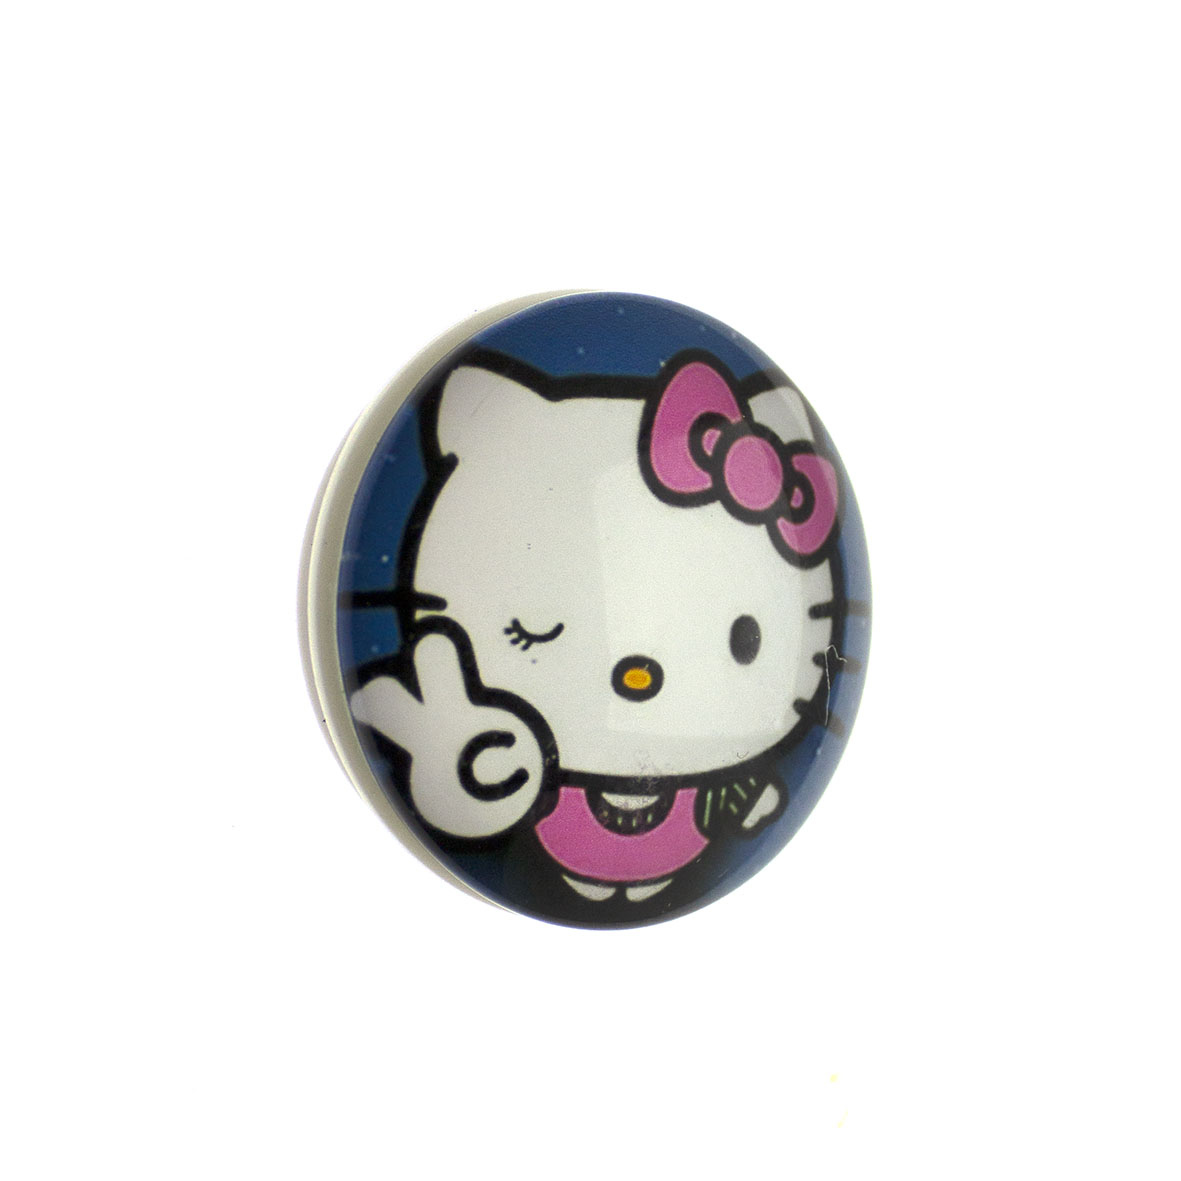 Pop Socket Hello Kitty 00-00009981